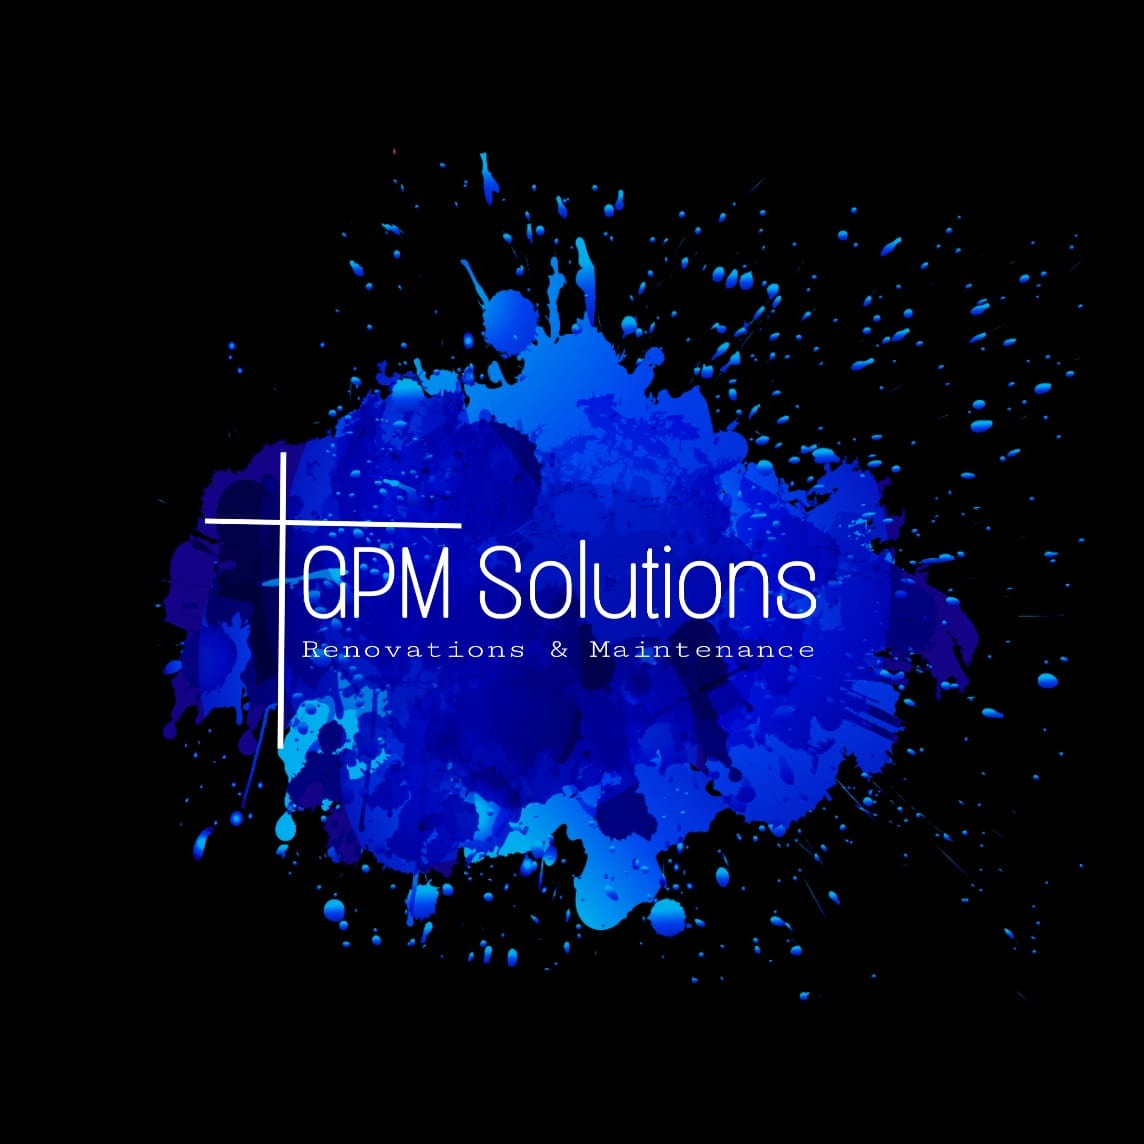 Home Renovations GPM Solutions